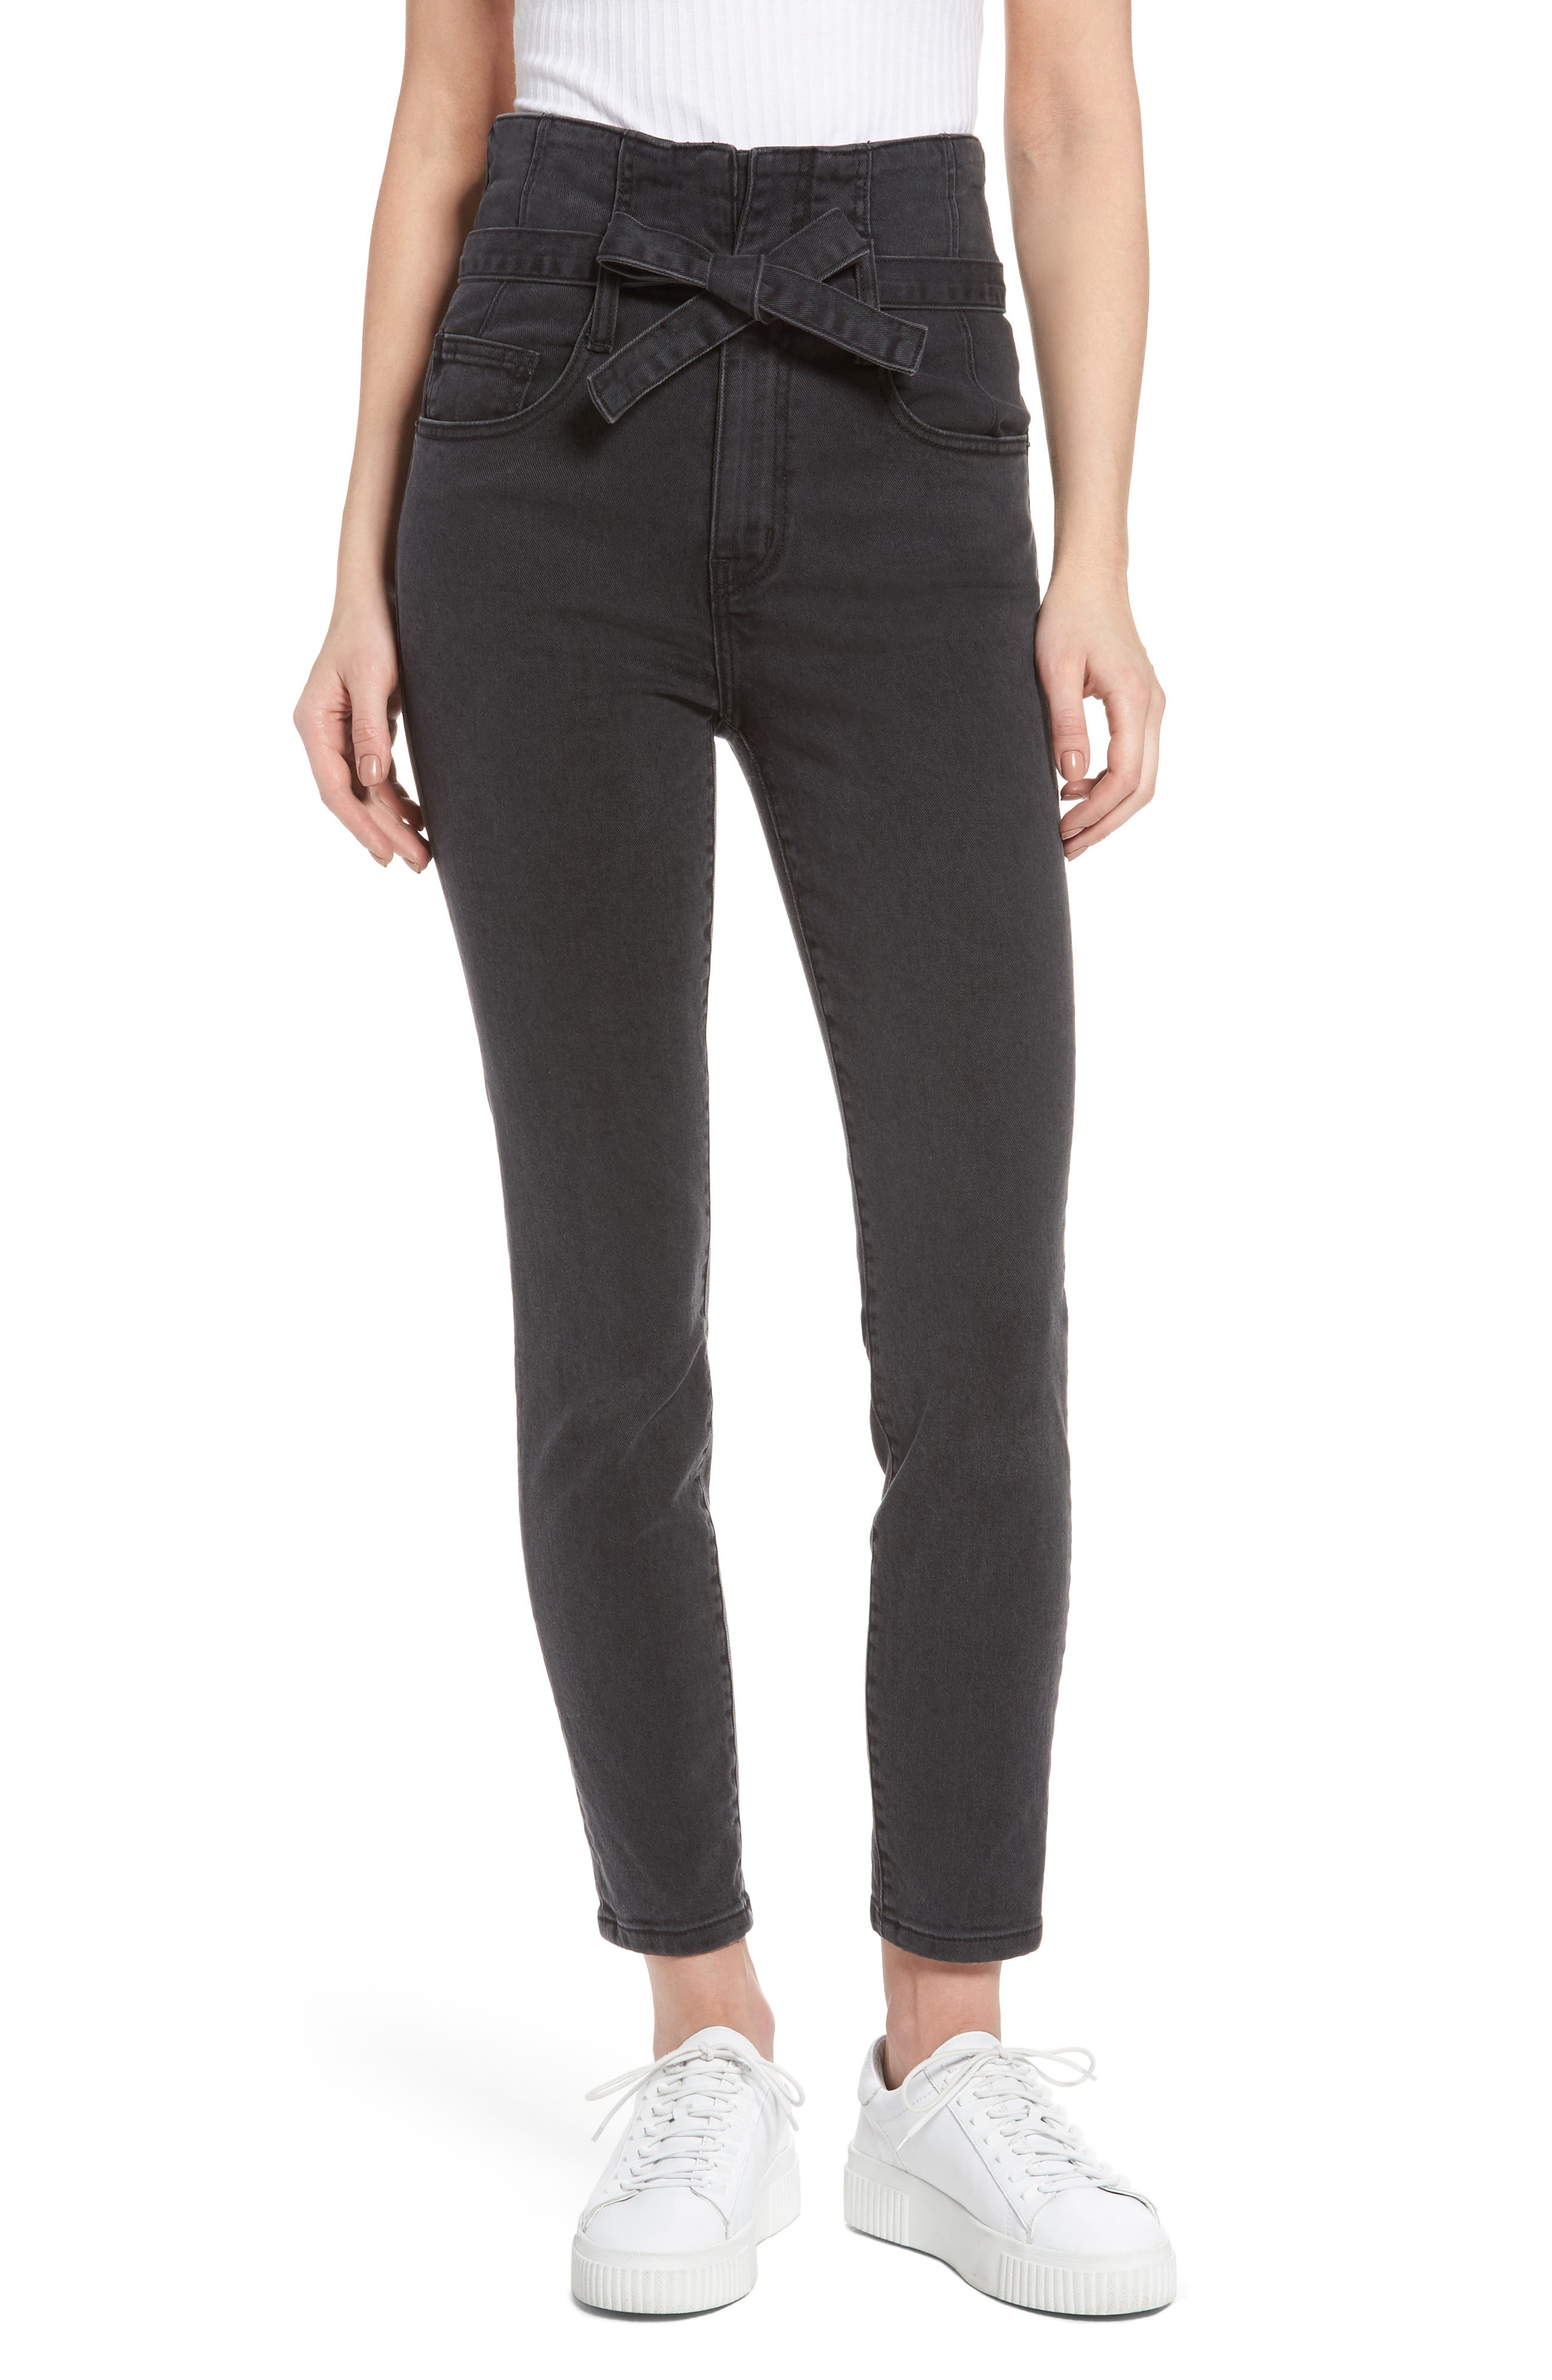 Current/Elliott Corset Stiletto Ankle Skinny Jeans (Indiana)